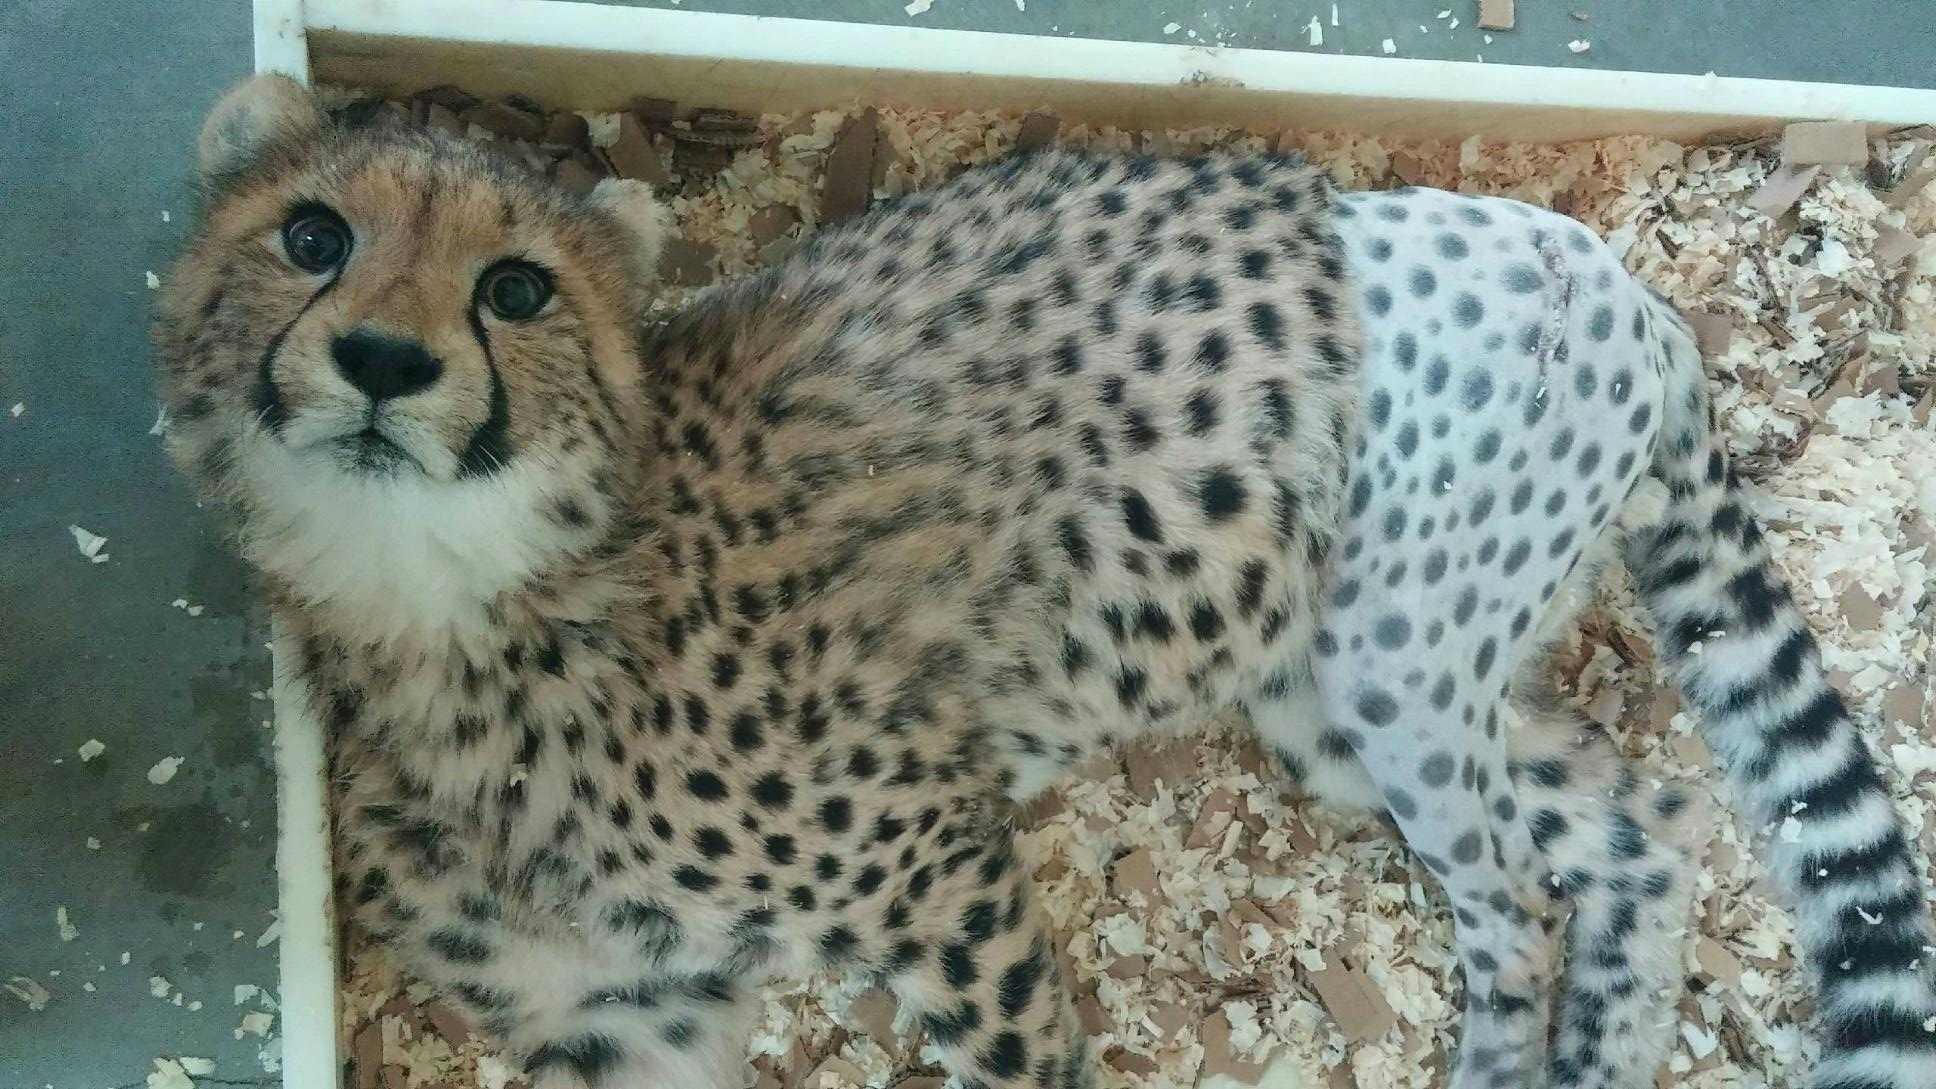 Redd, the Cincinnati Zoo's cheetah cub, was shaved for hip surgery recently.